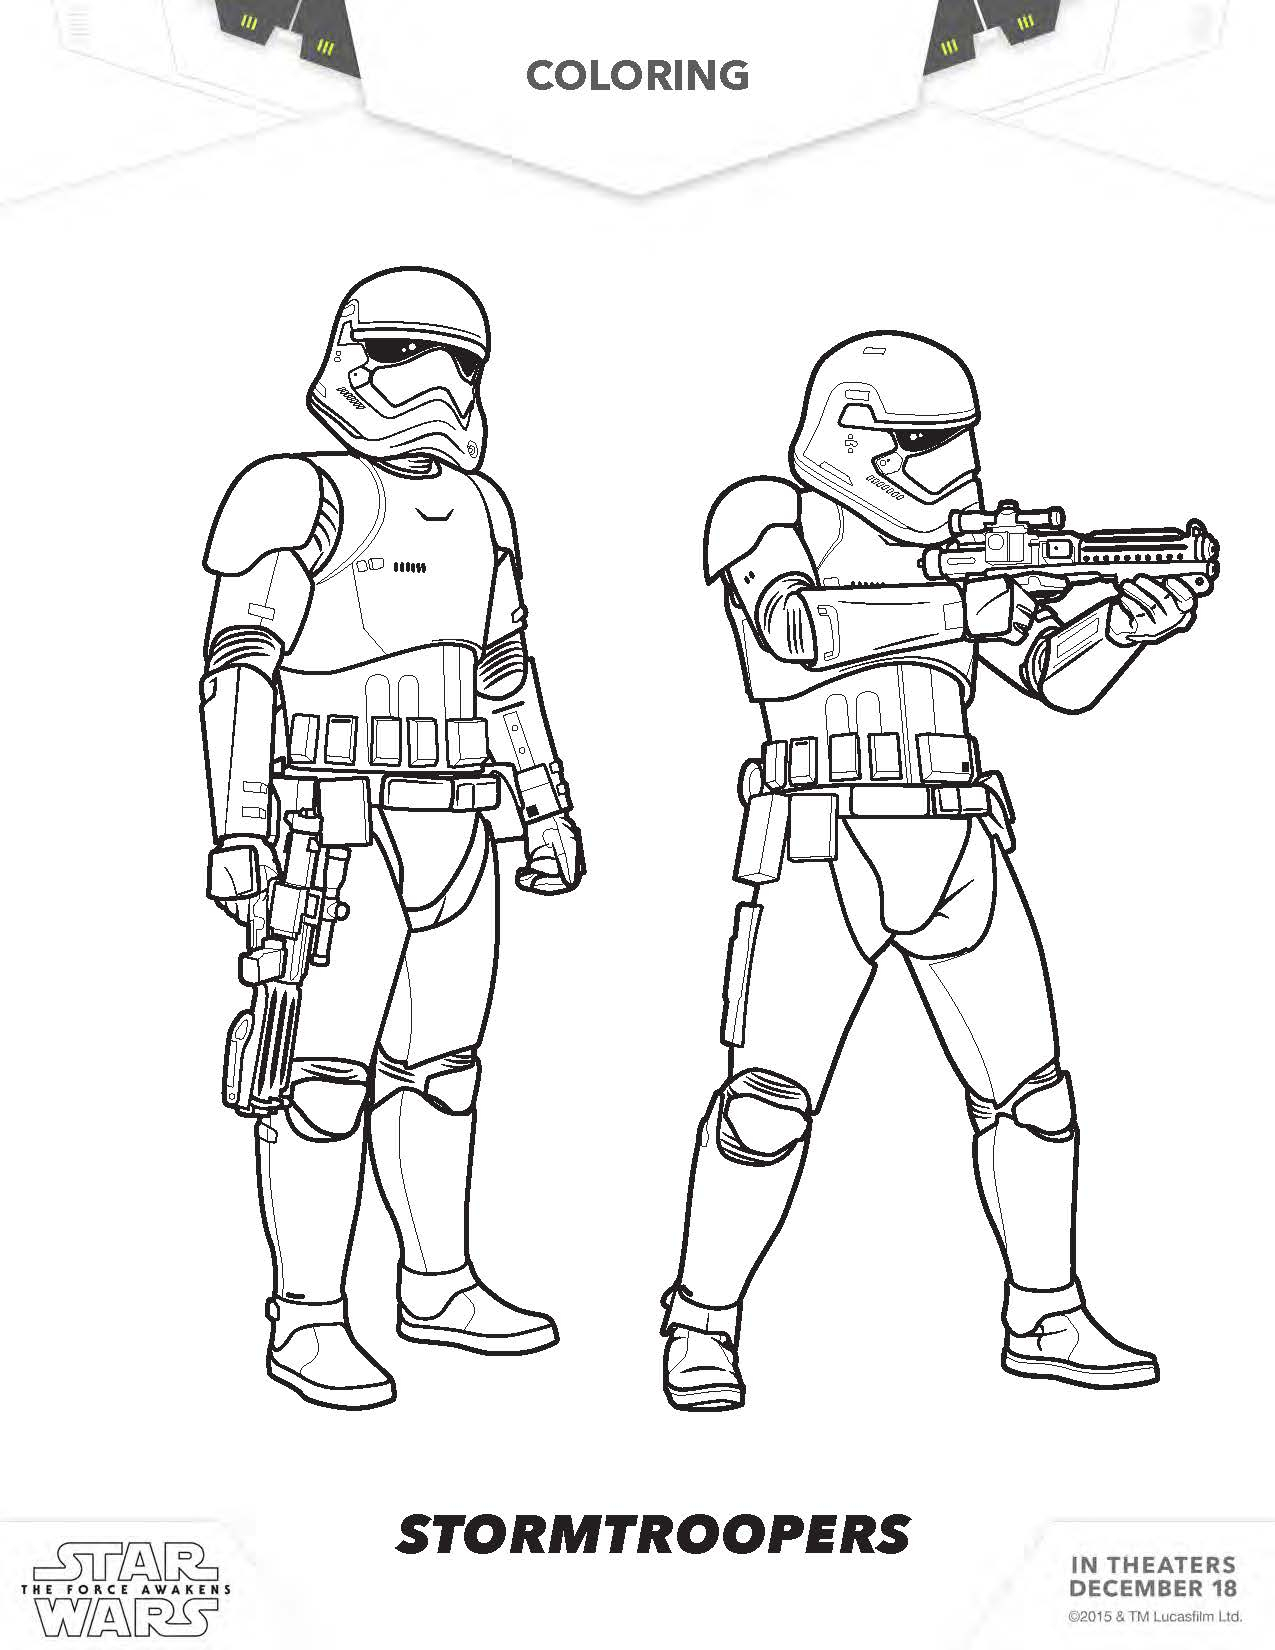 Stormtrooper Coloring Page Stormtrooper Coloring Pages Star Wars Stormtrooper Art Coloring Page